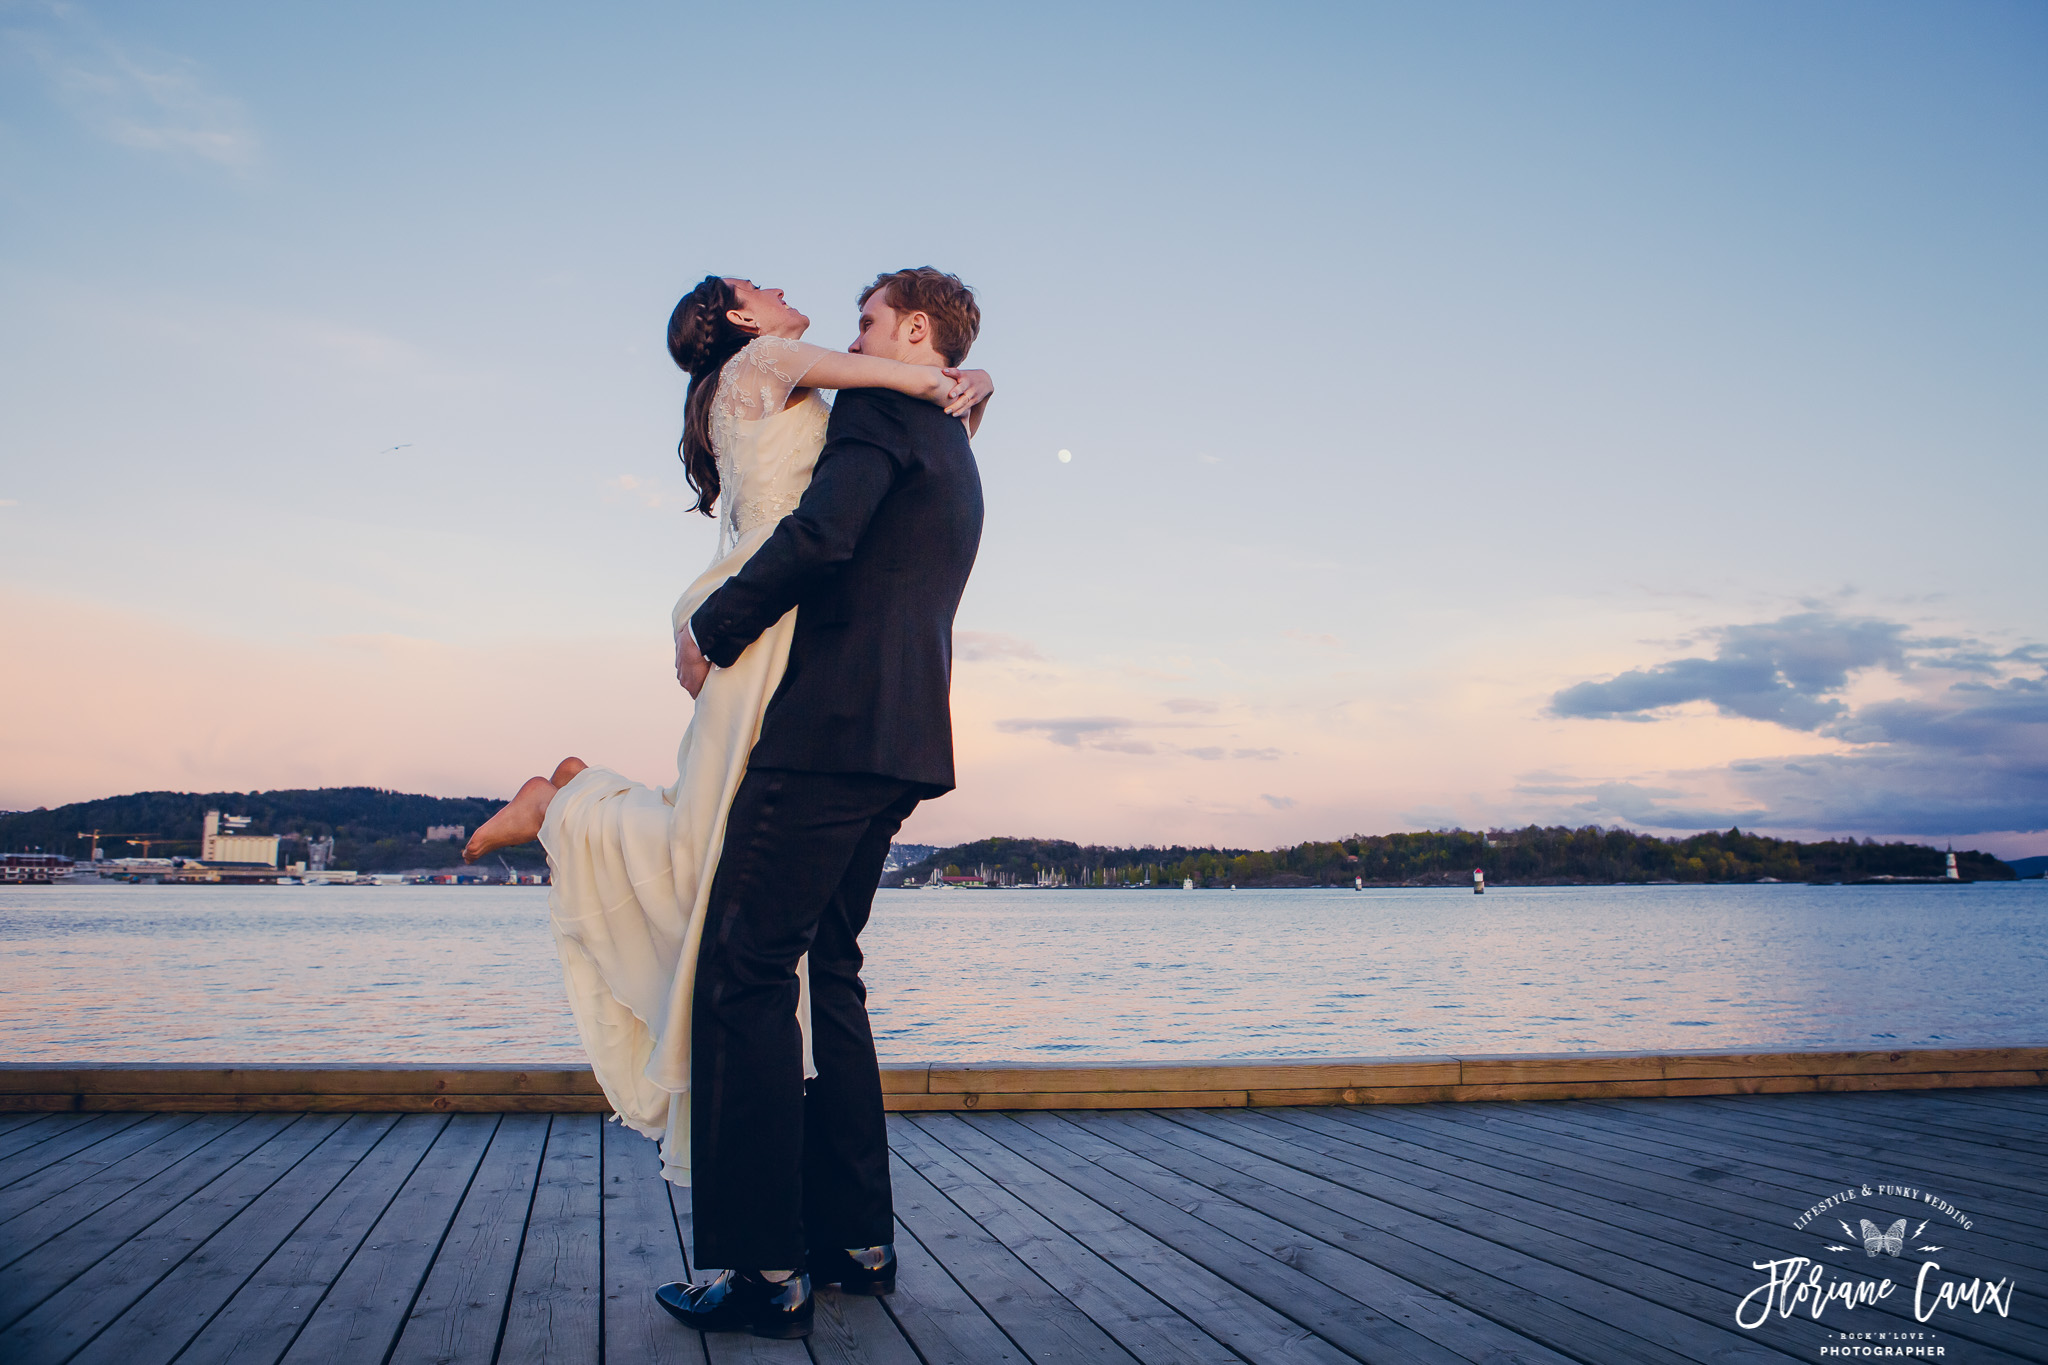 destination-wedding-photographer-oslo-norway-floriane-caux-45